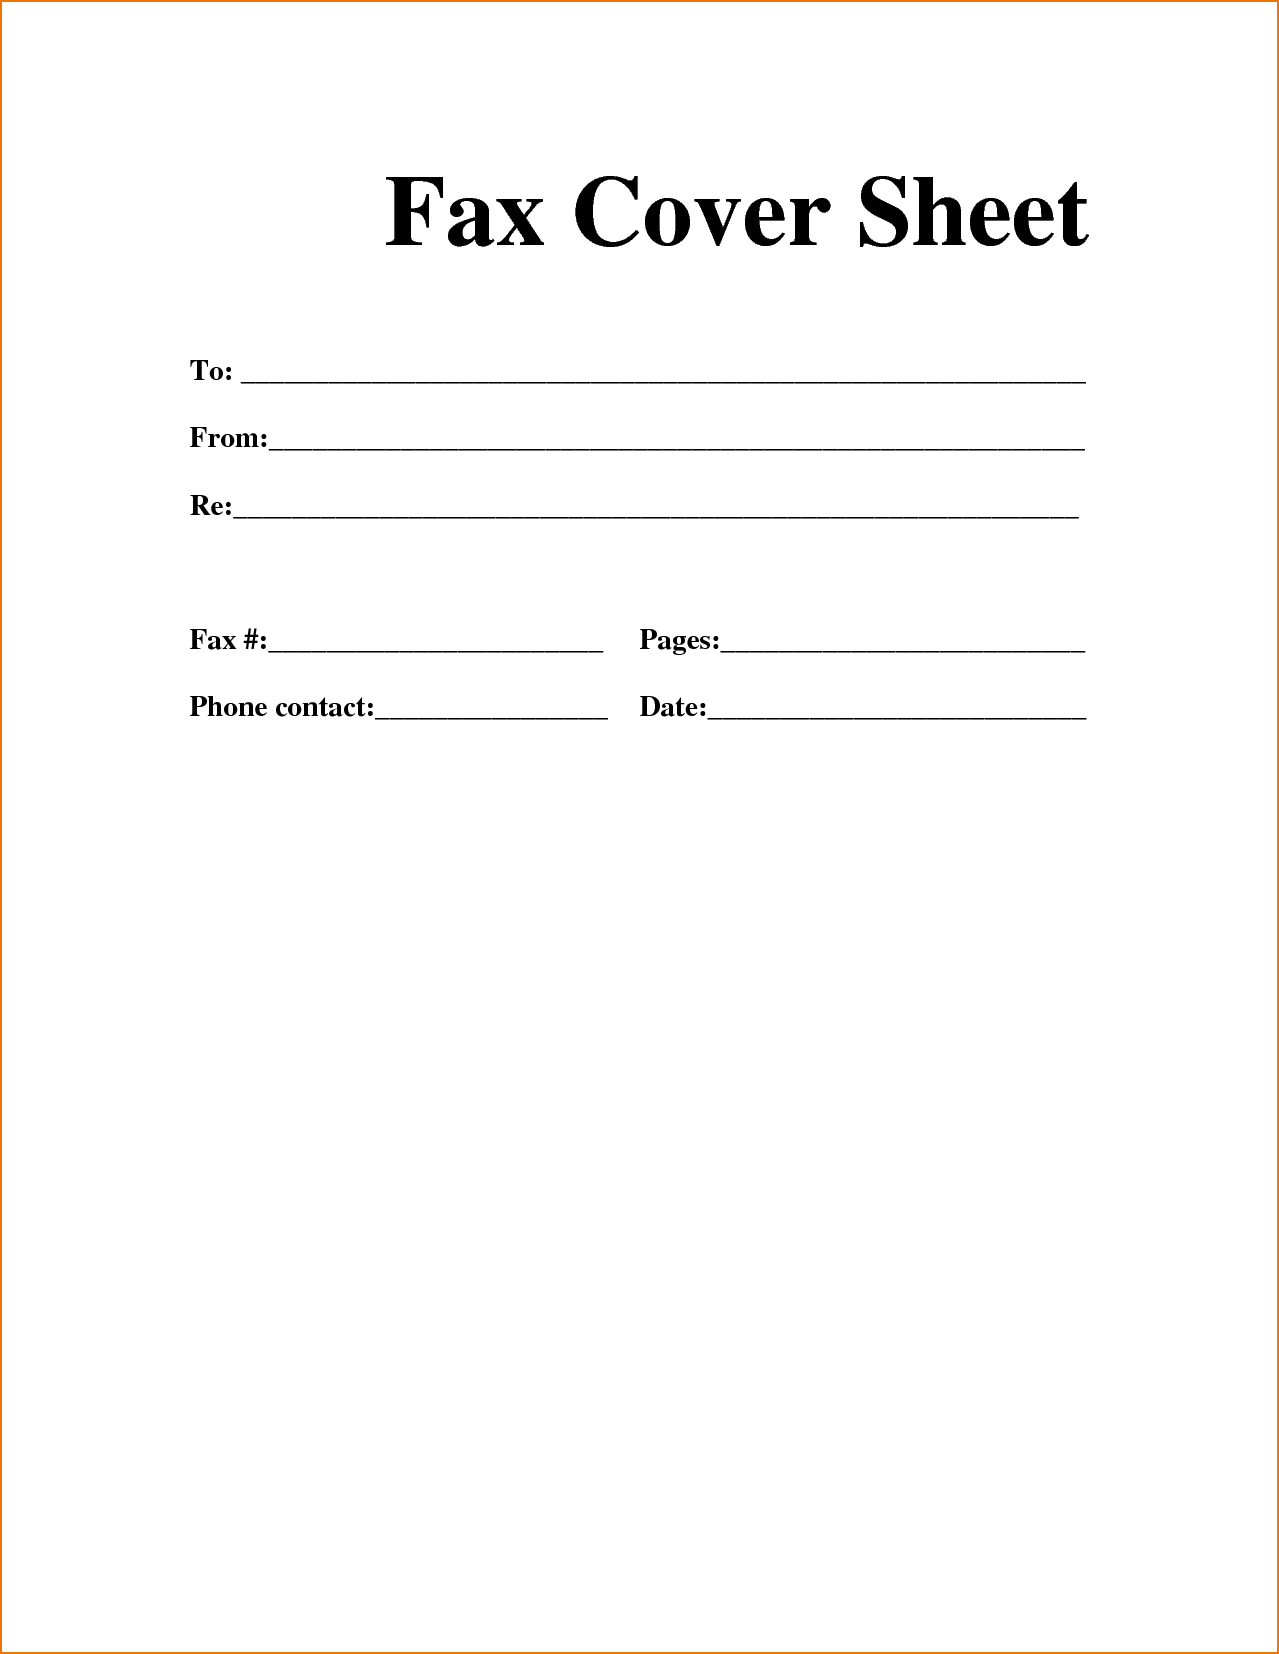 samples fax cover sheets Onwe.bioinnovate.co